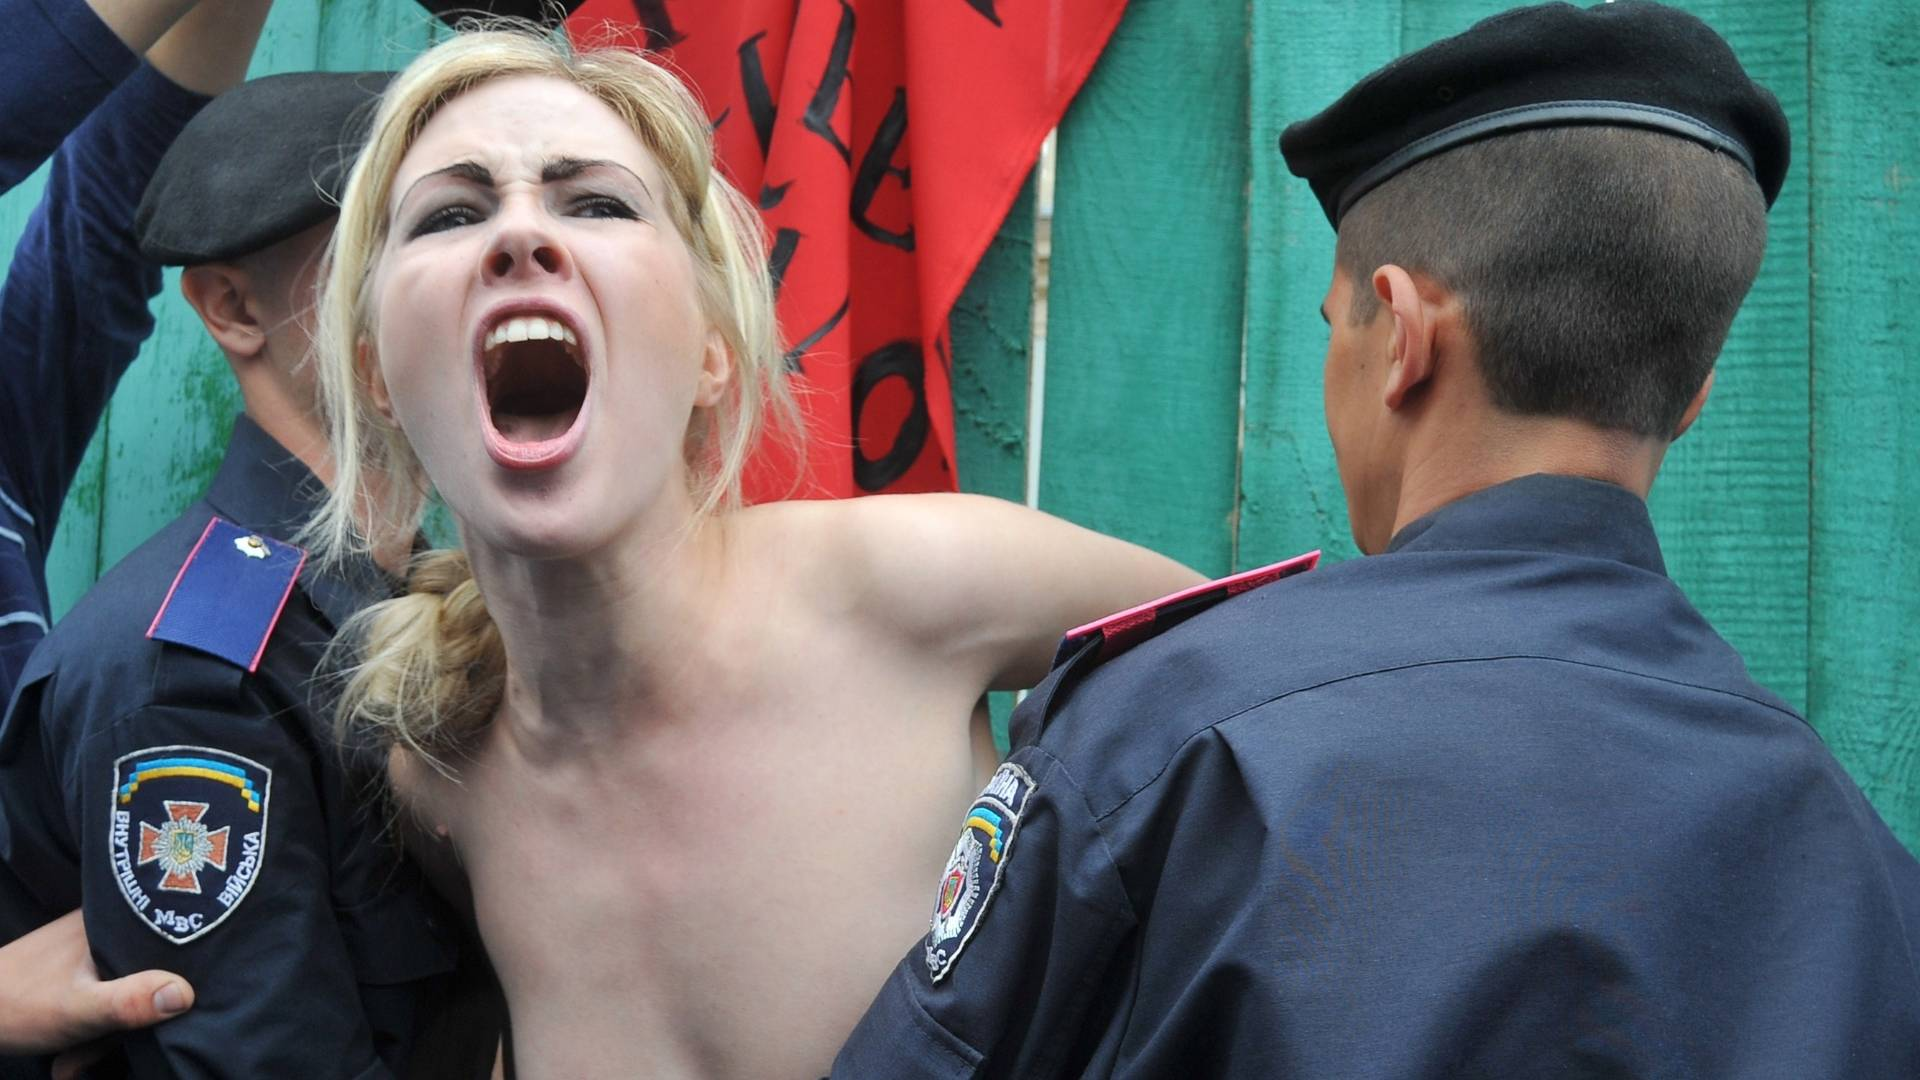 Ucranianas protestam topless contra reforma da aposentadoria